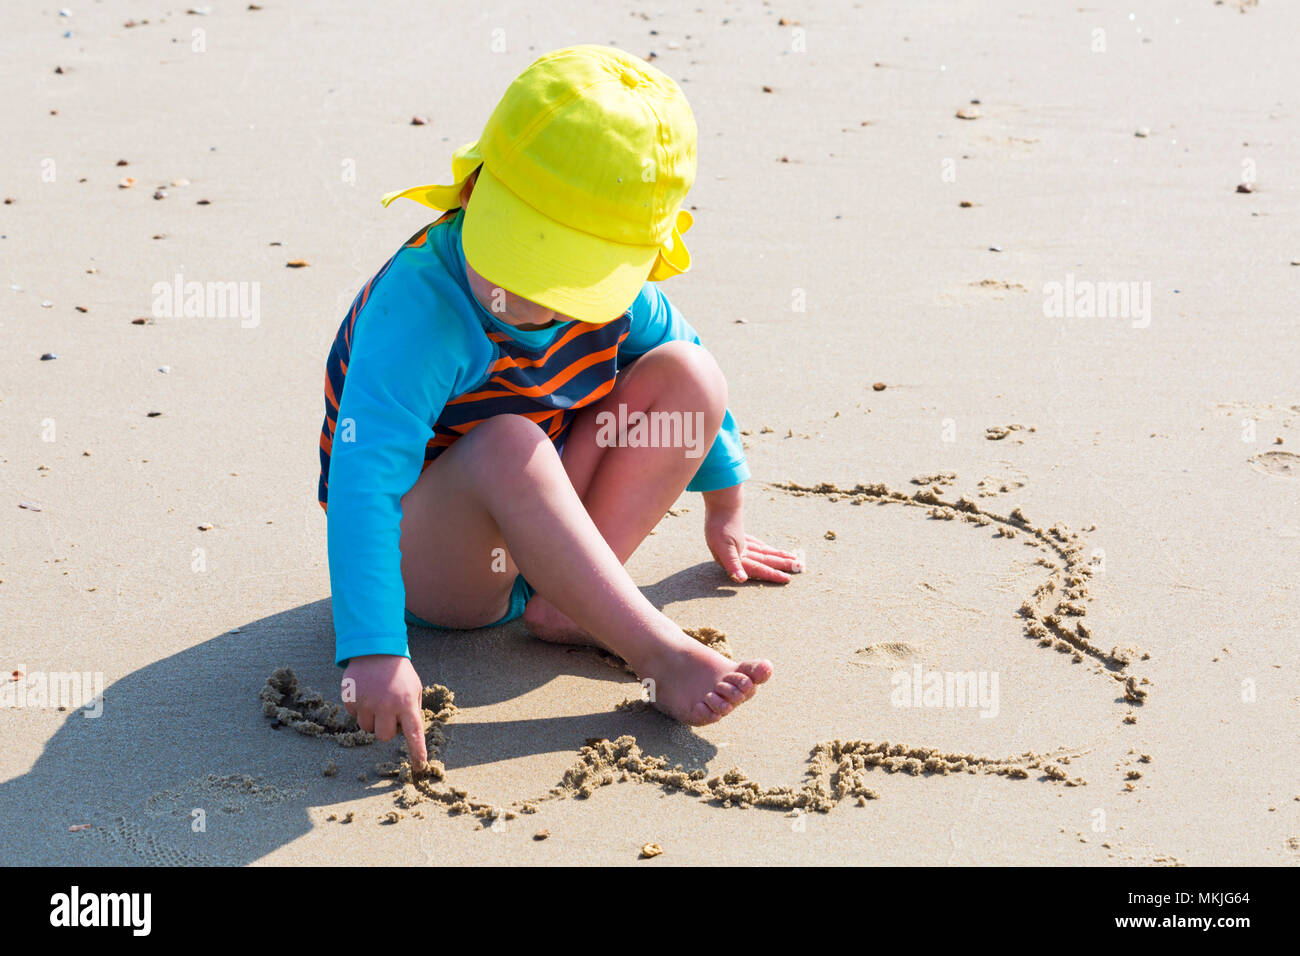 Bournemouth, Dorset, UK. 8th May 2018. UK weather: warm sunny start to the day, as the a young lad (aged 4) draws in the sand with his finger at Alum Chine beach. Credit: Carolyn Jenkins/Alamy Live News Stock Photo